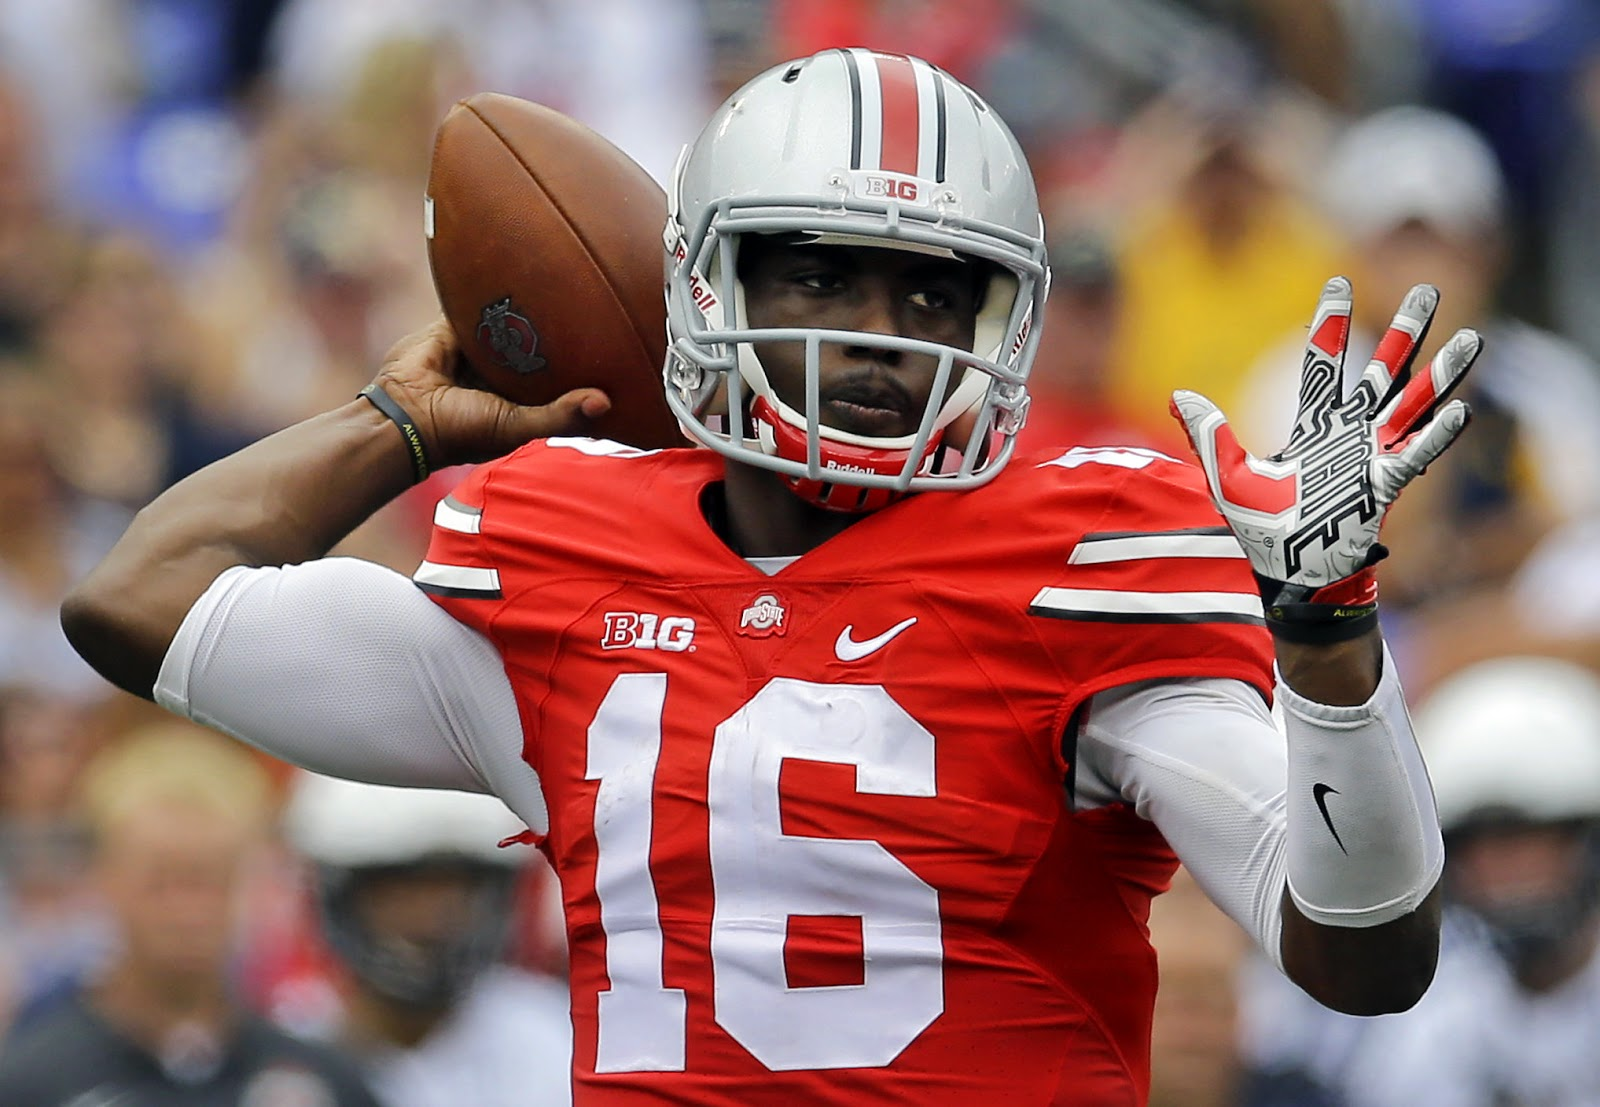 Frank Beamer says Ohio State has SEC Speed, compares J.T. Barrett to Braxton Miller.